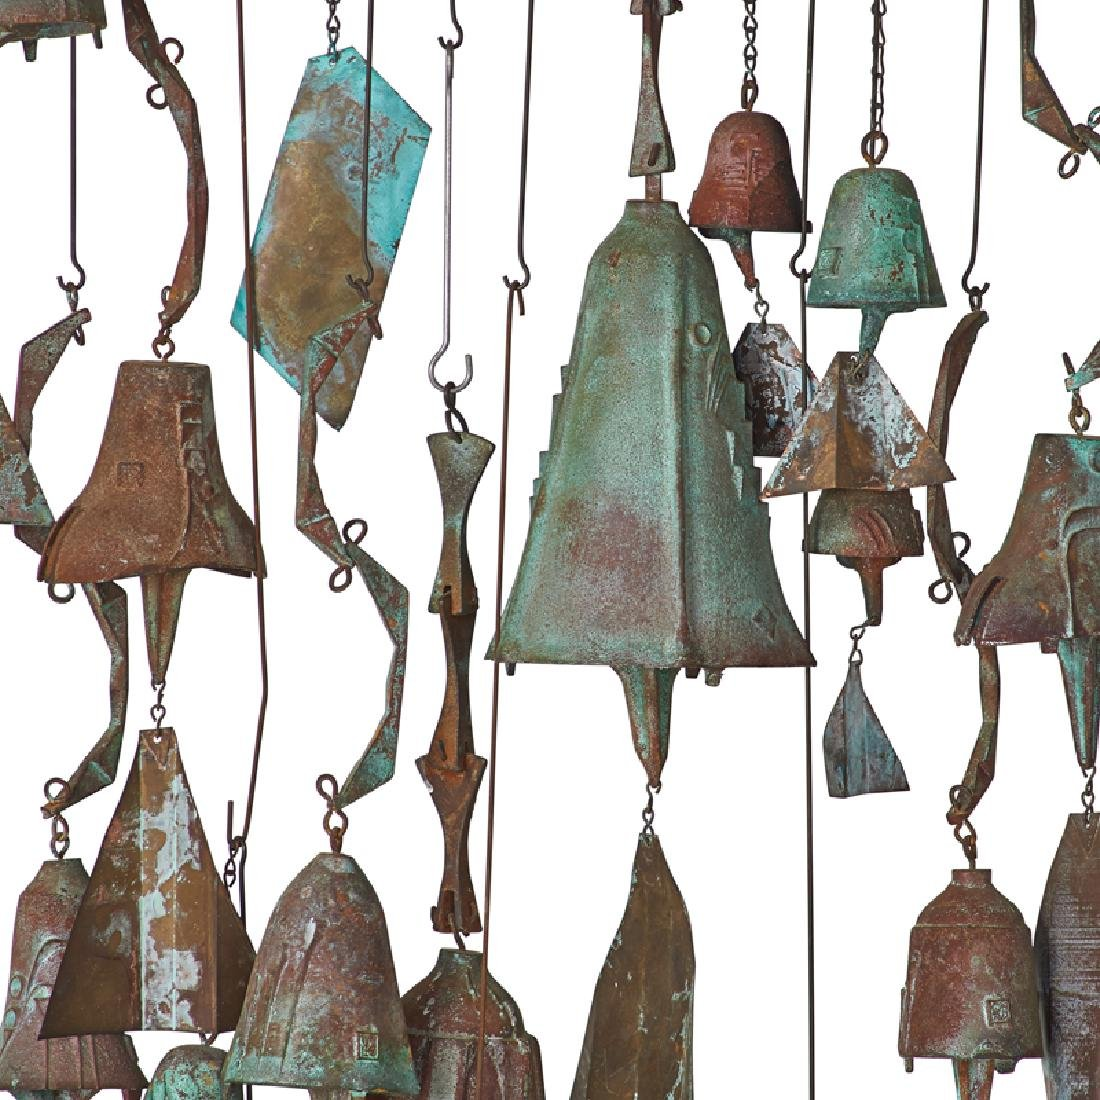 PAOLO SOLERI Collection of hanging bells - 2